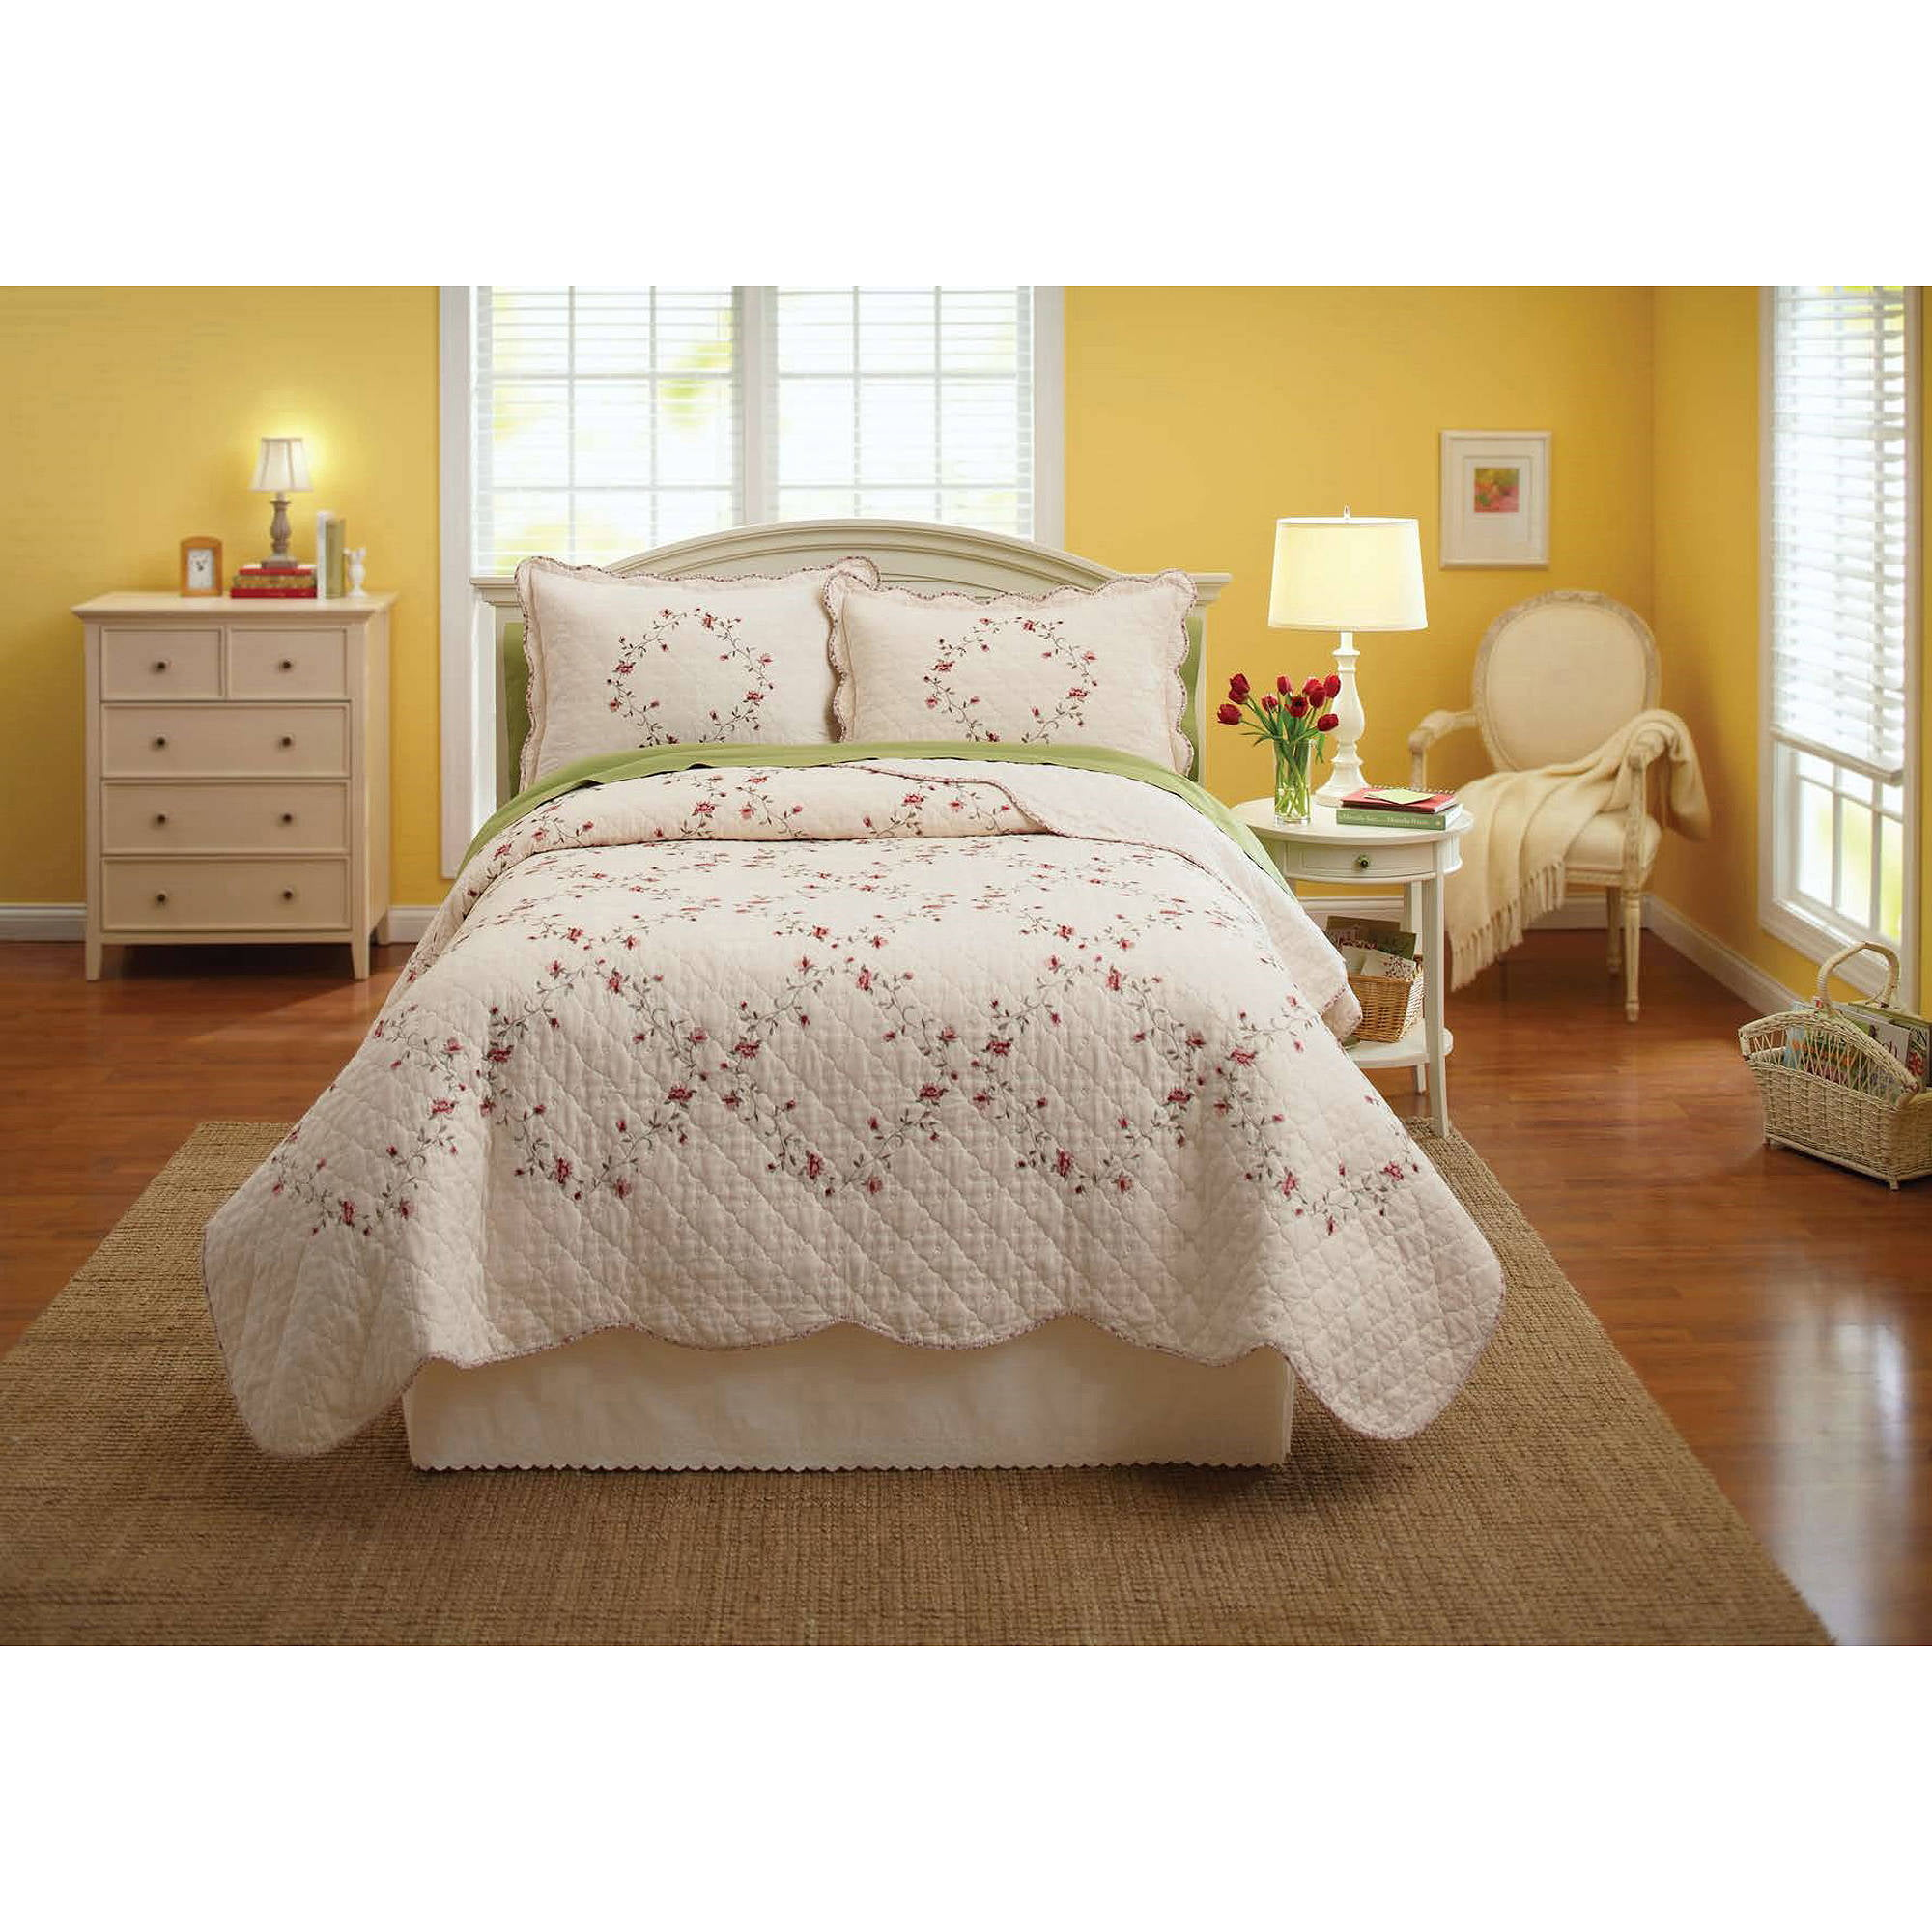 sets is better trending piece gardens try bedding homes quilt and set comforter big blue pin